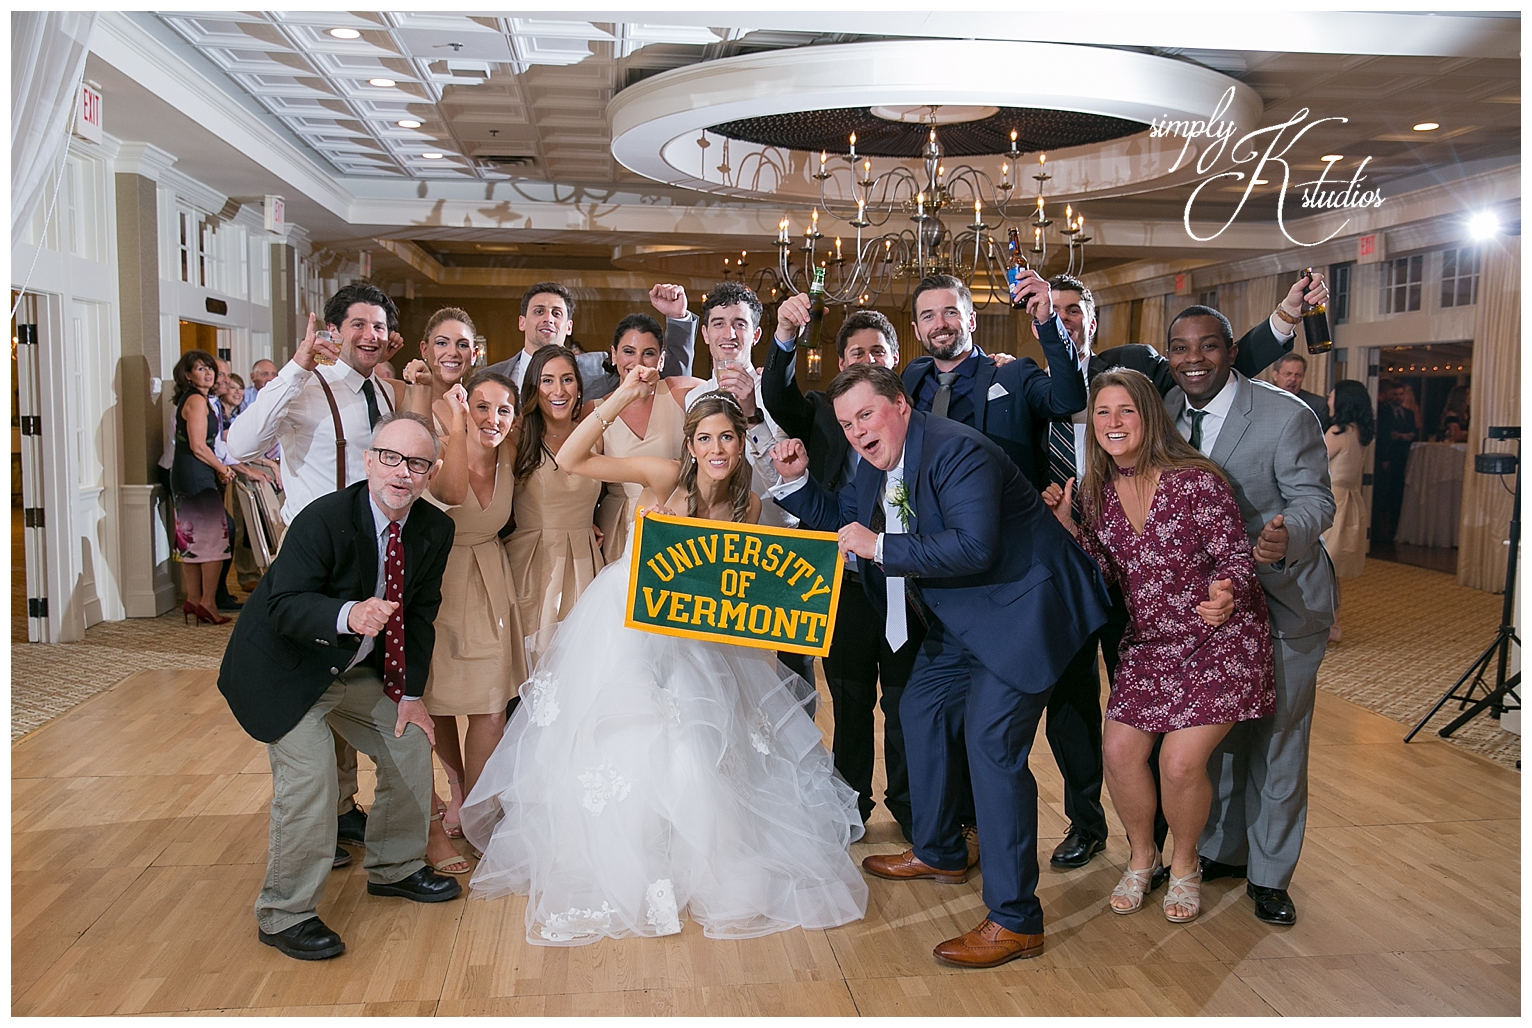 Burlington Vermont Wedding.jpg